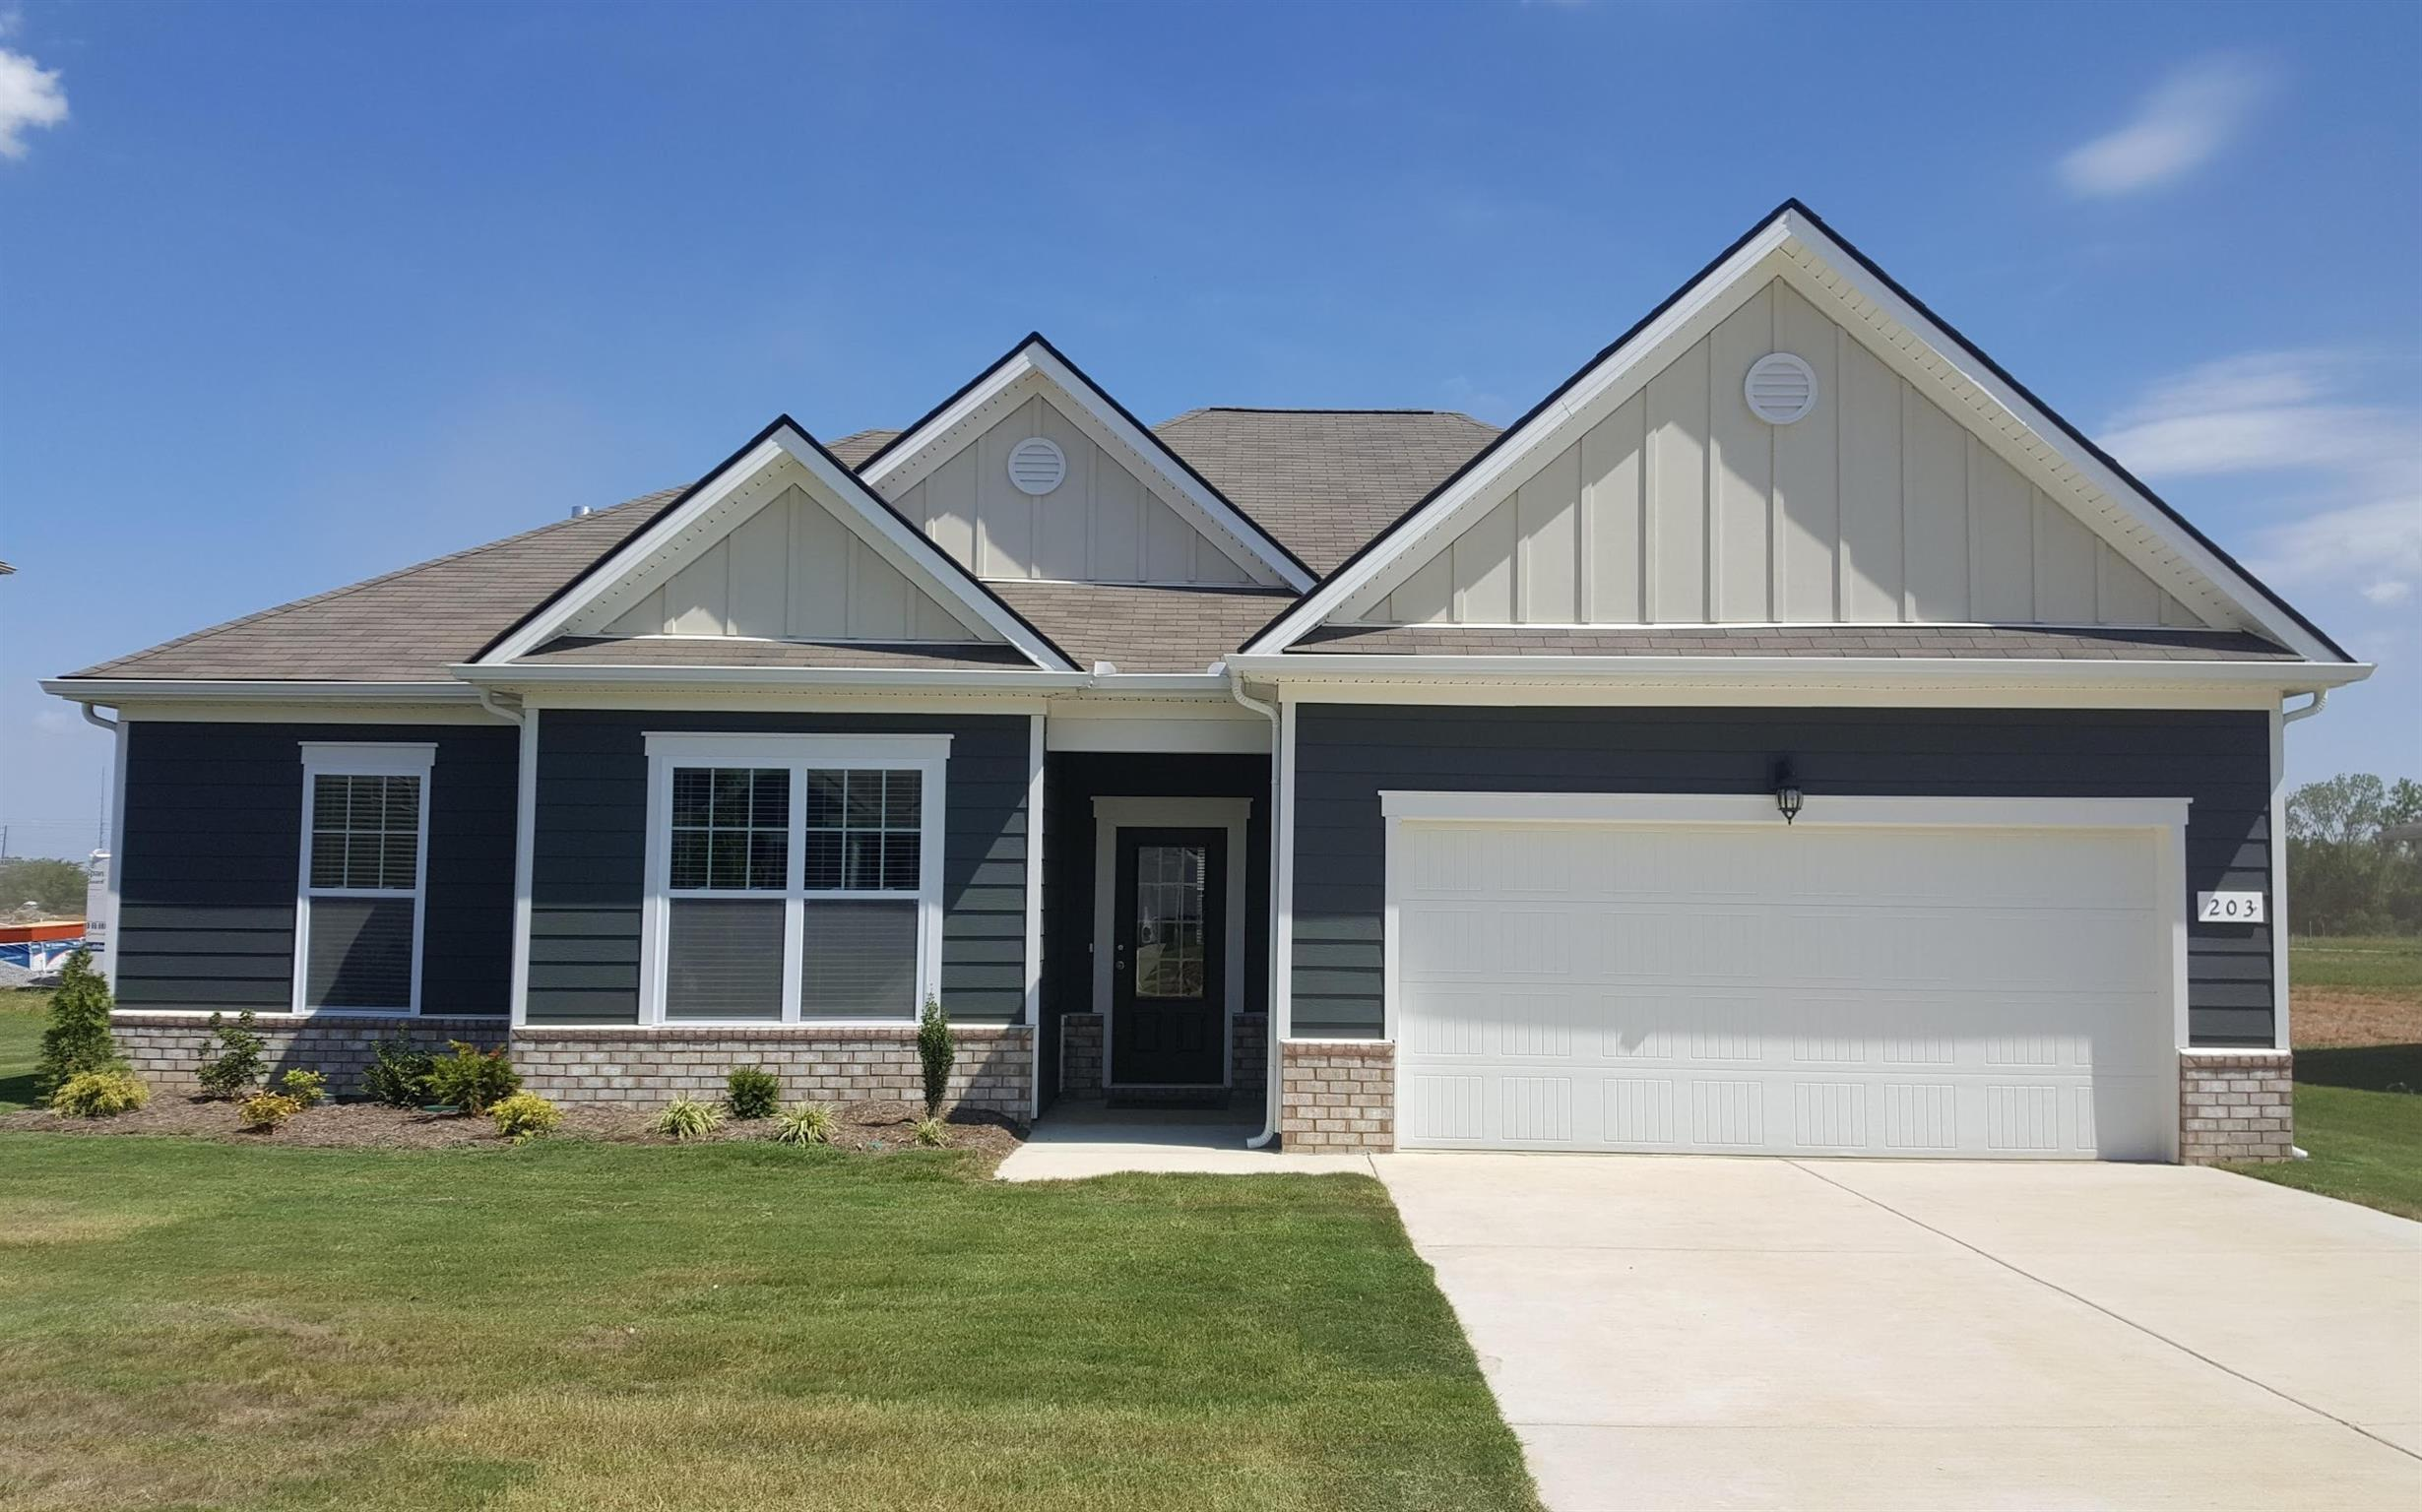 203 Princeton Drive Lot 47, Lebanon in Wilson County County, TN 37087 Home for Sale